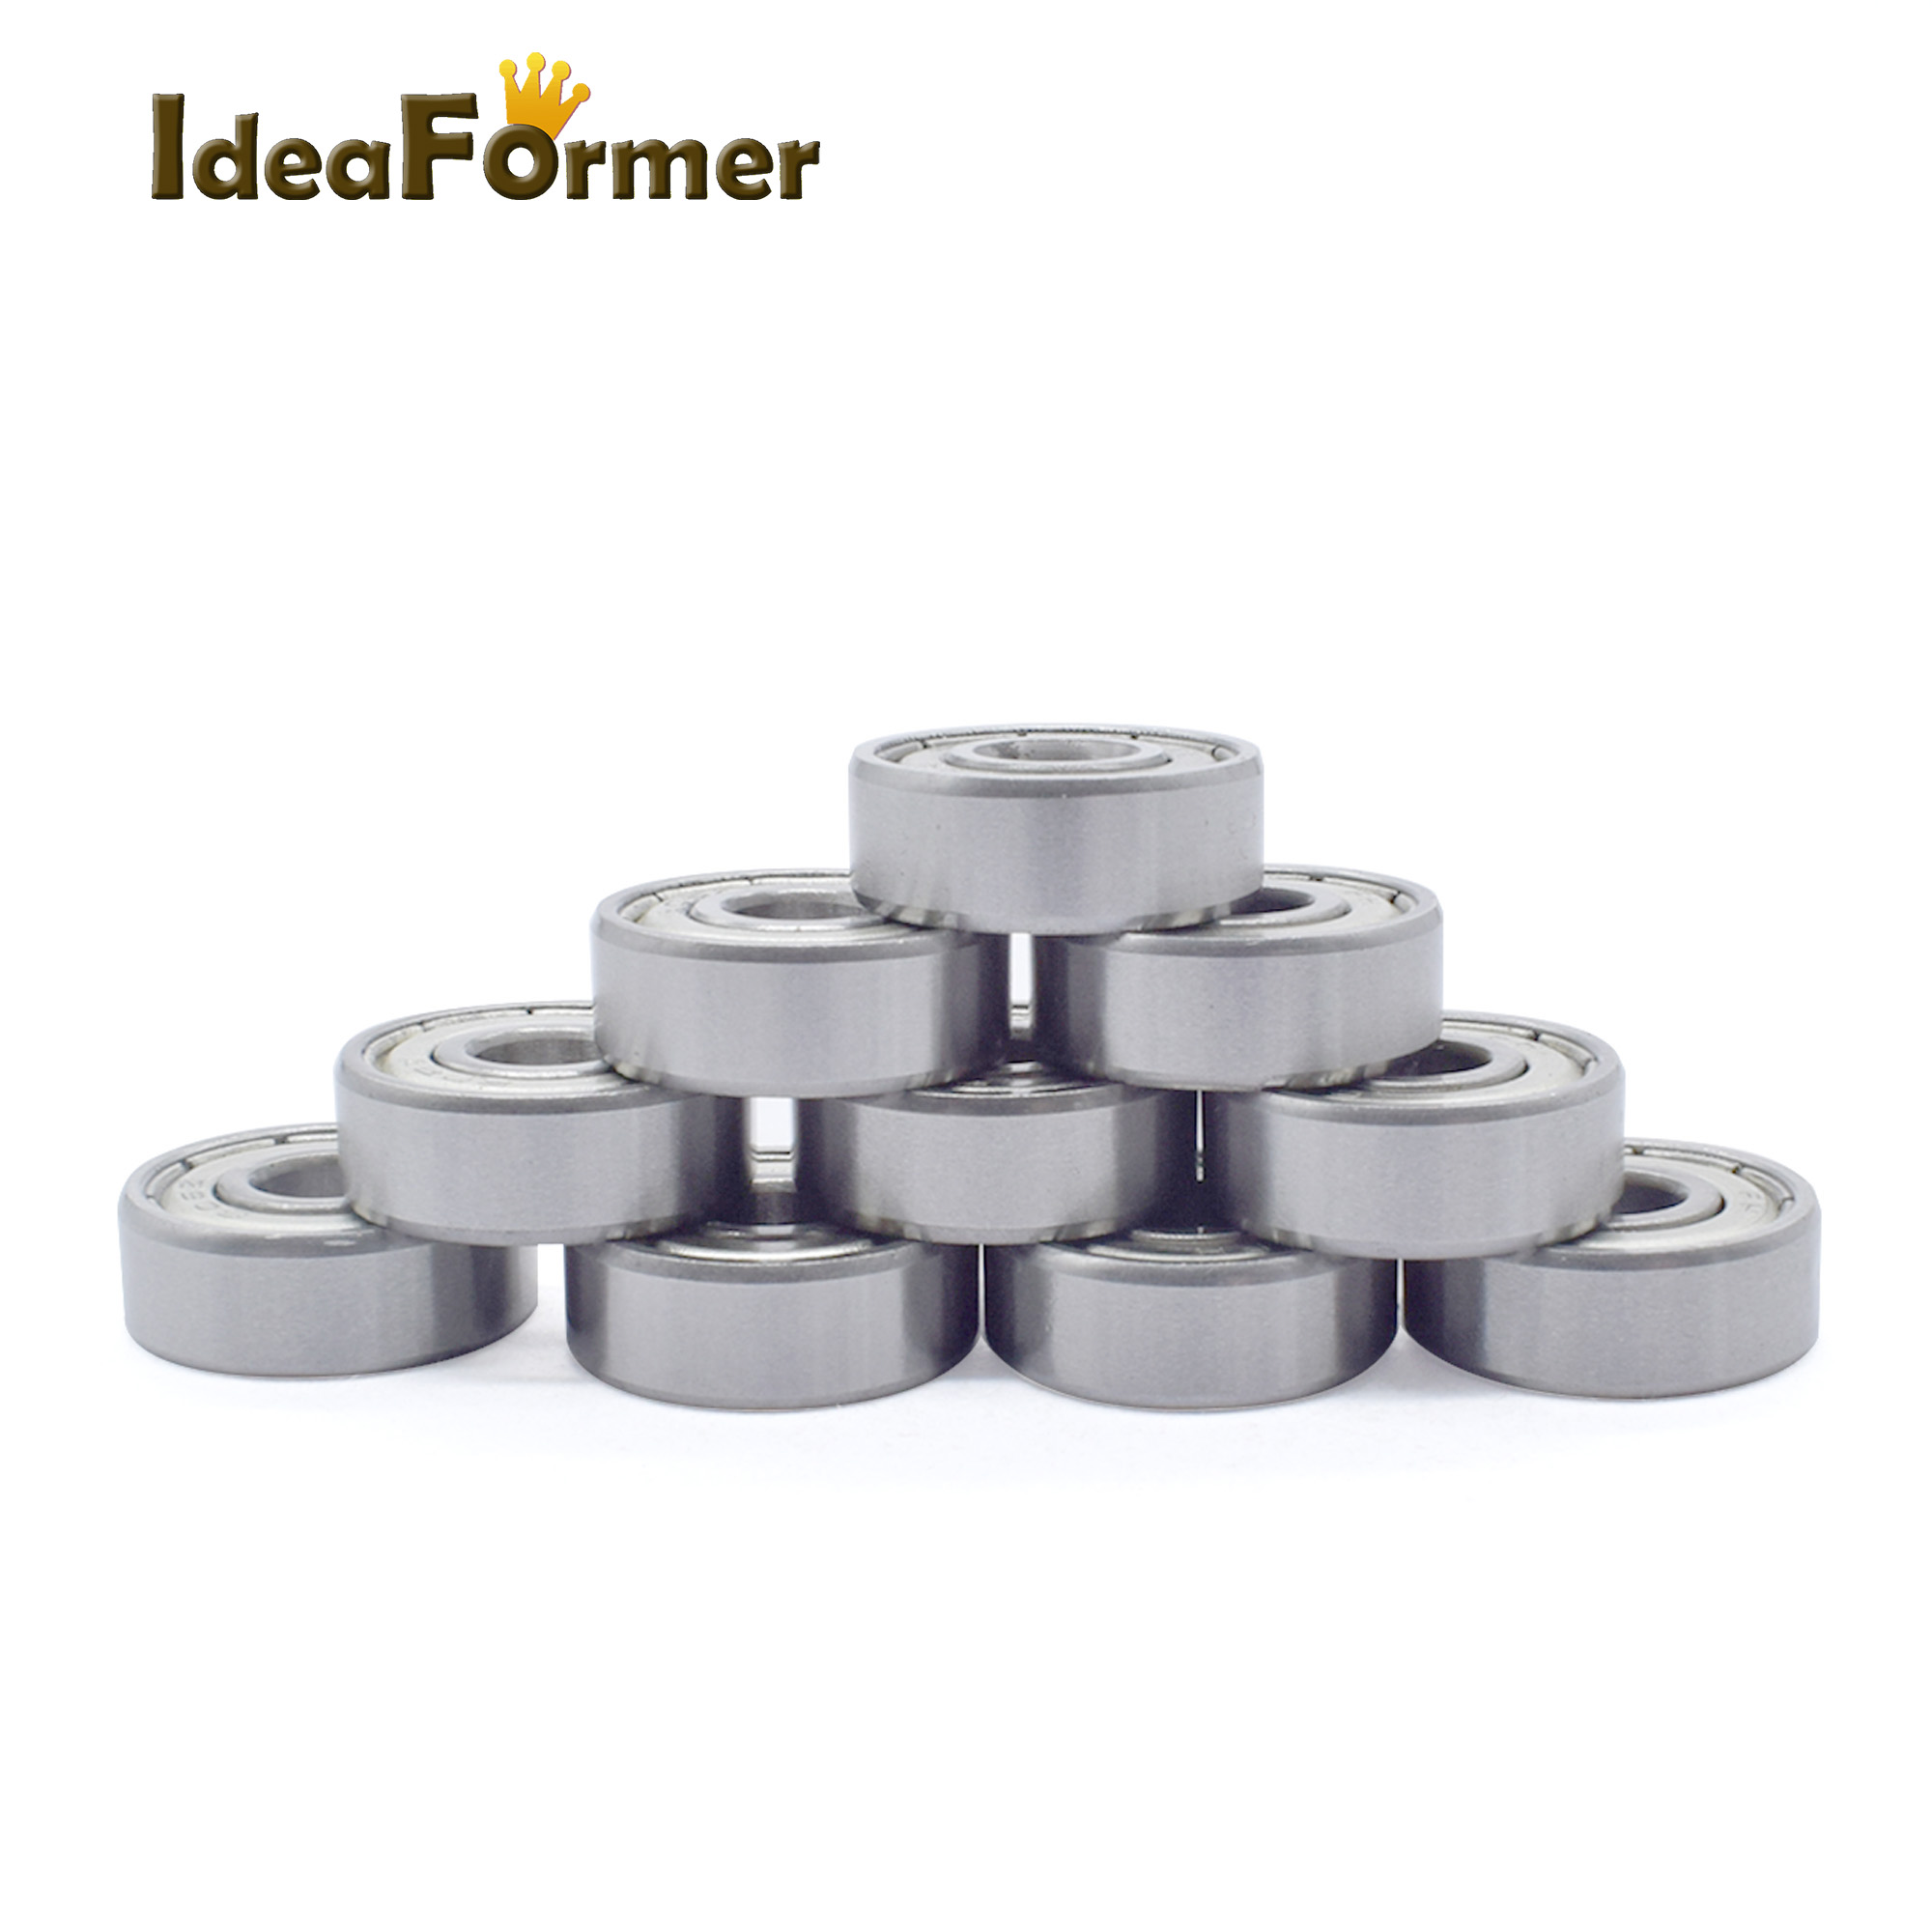 10pcs ABEC 7 <font><b>625ZZ</b></font> Ball Bearing Deep Groove bearing 5*16*5 mm Miniature deep groove image